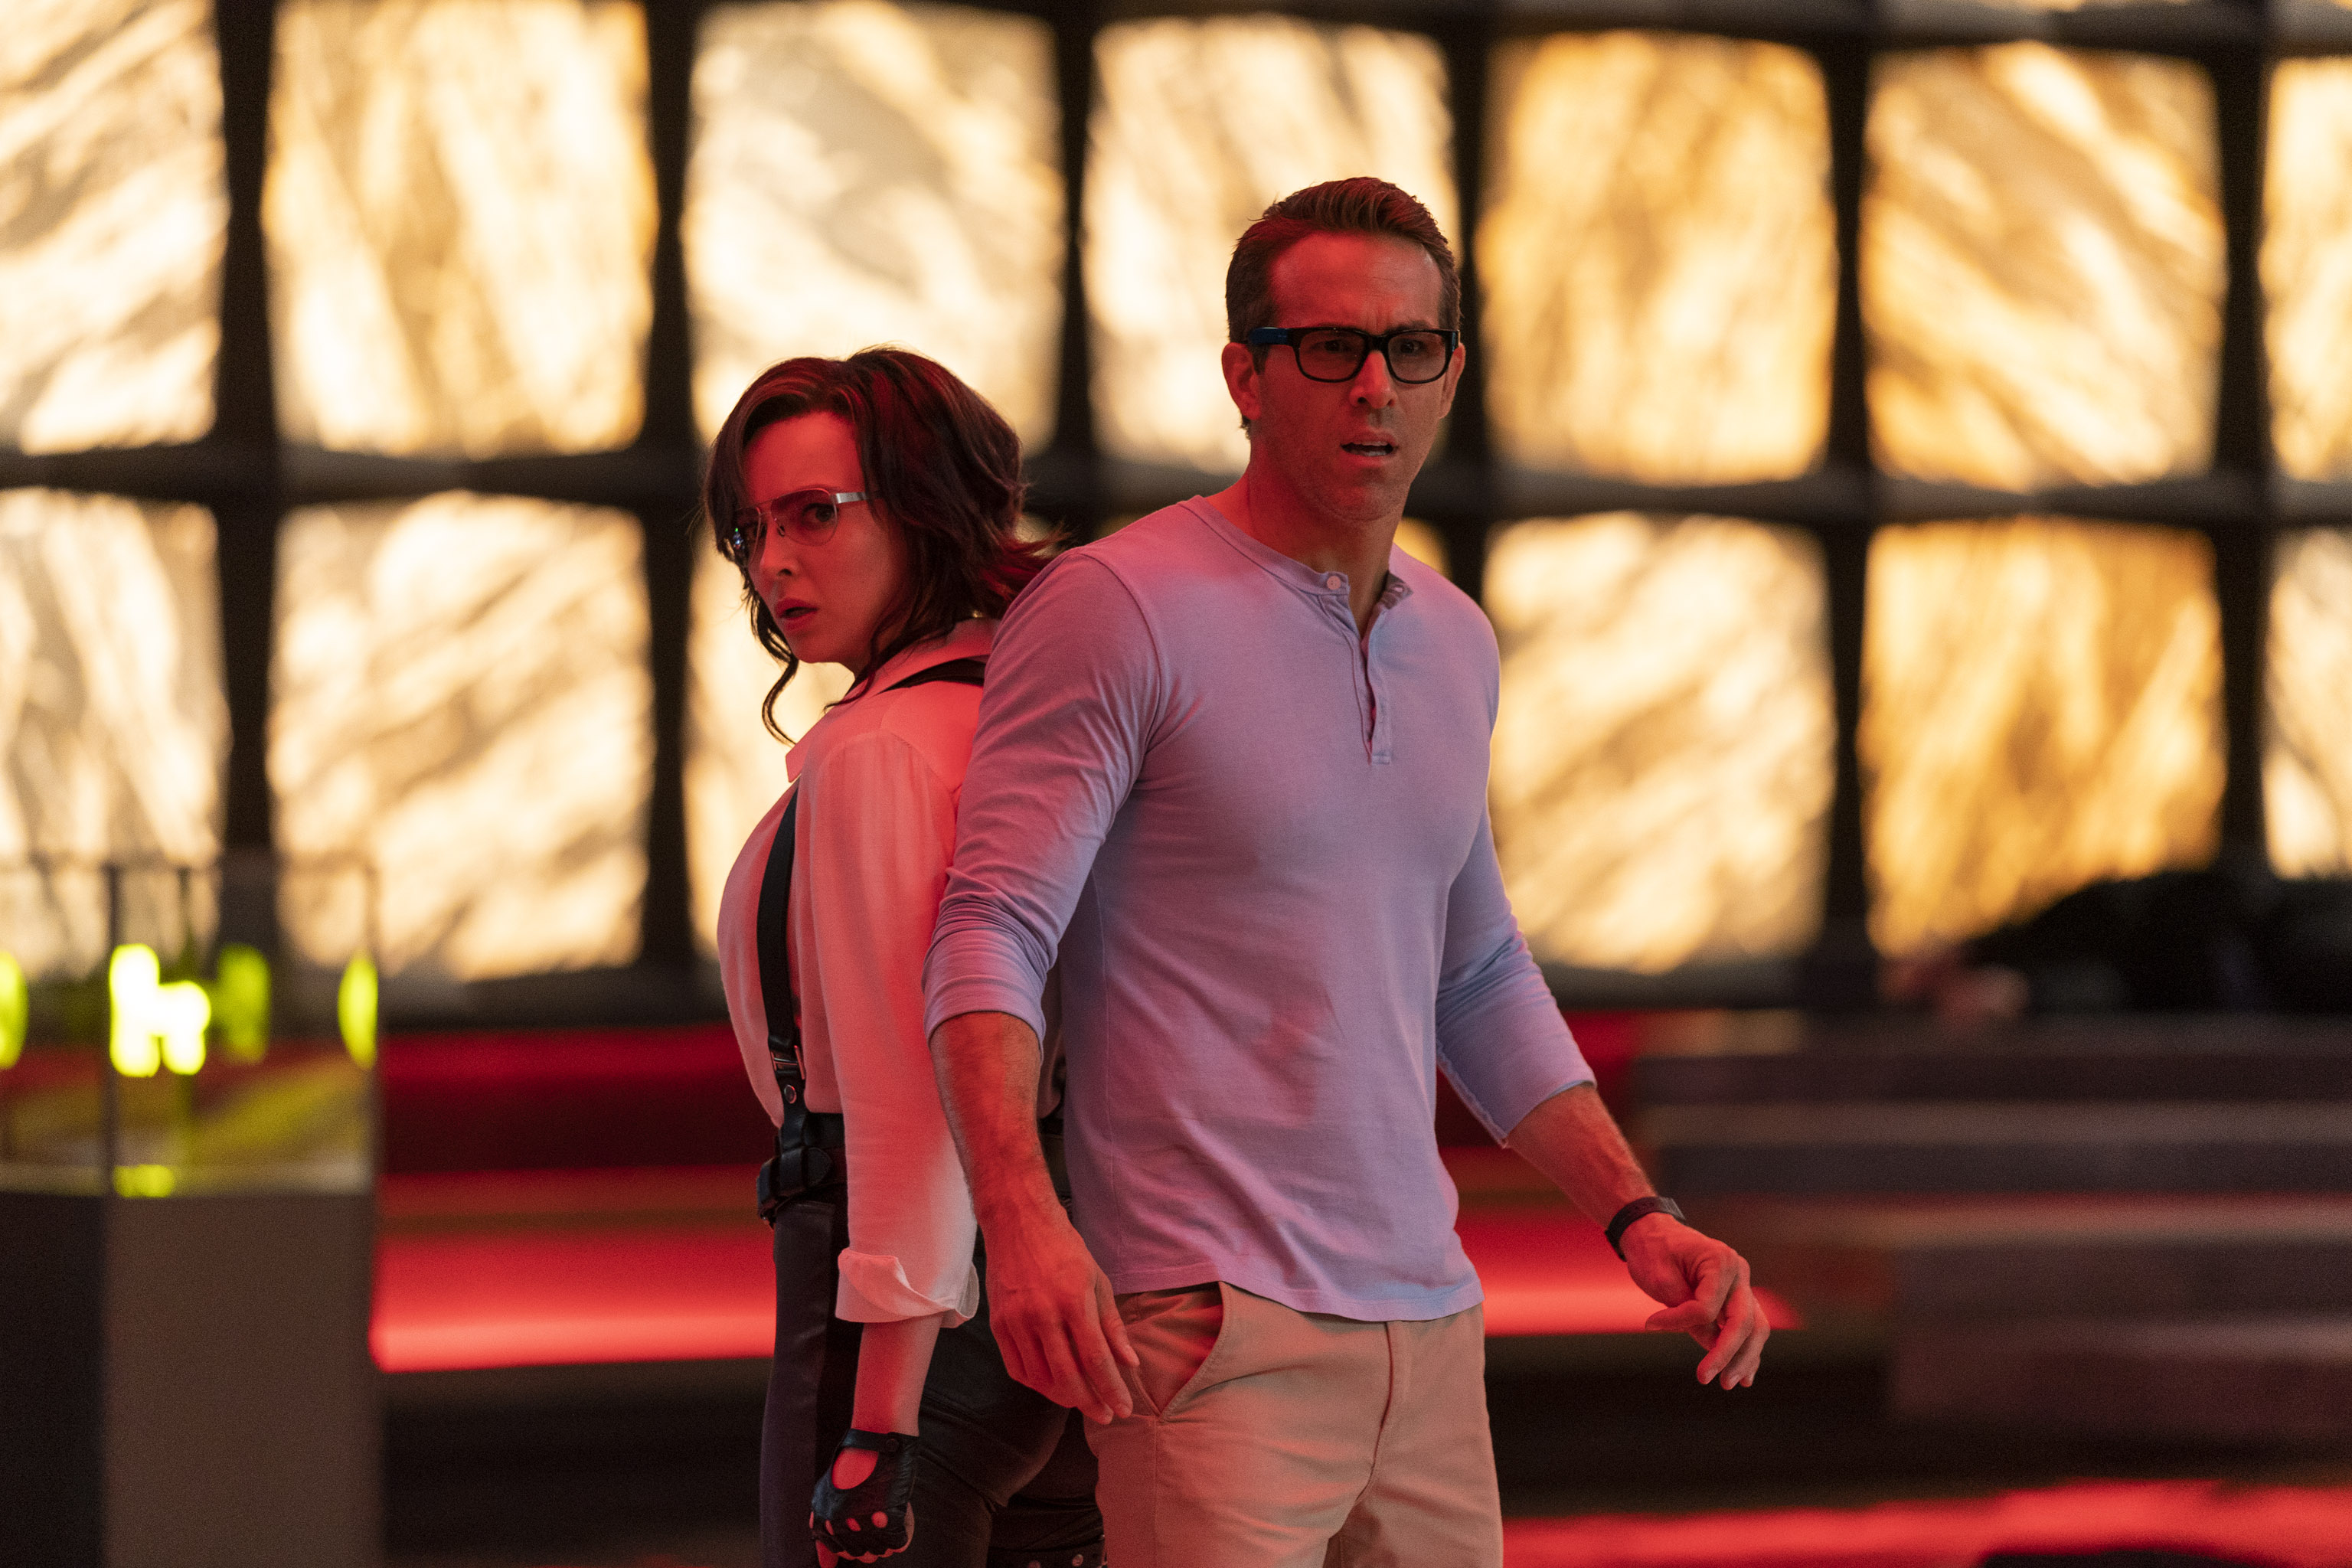 Jodie Comer as Molotov Girl and Ryan Reynolds as Guy in 20th Century Studios' FREE GUY.